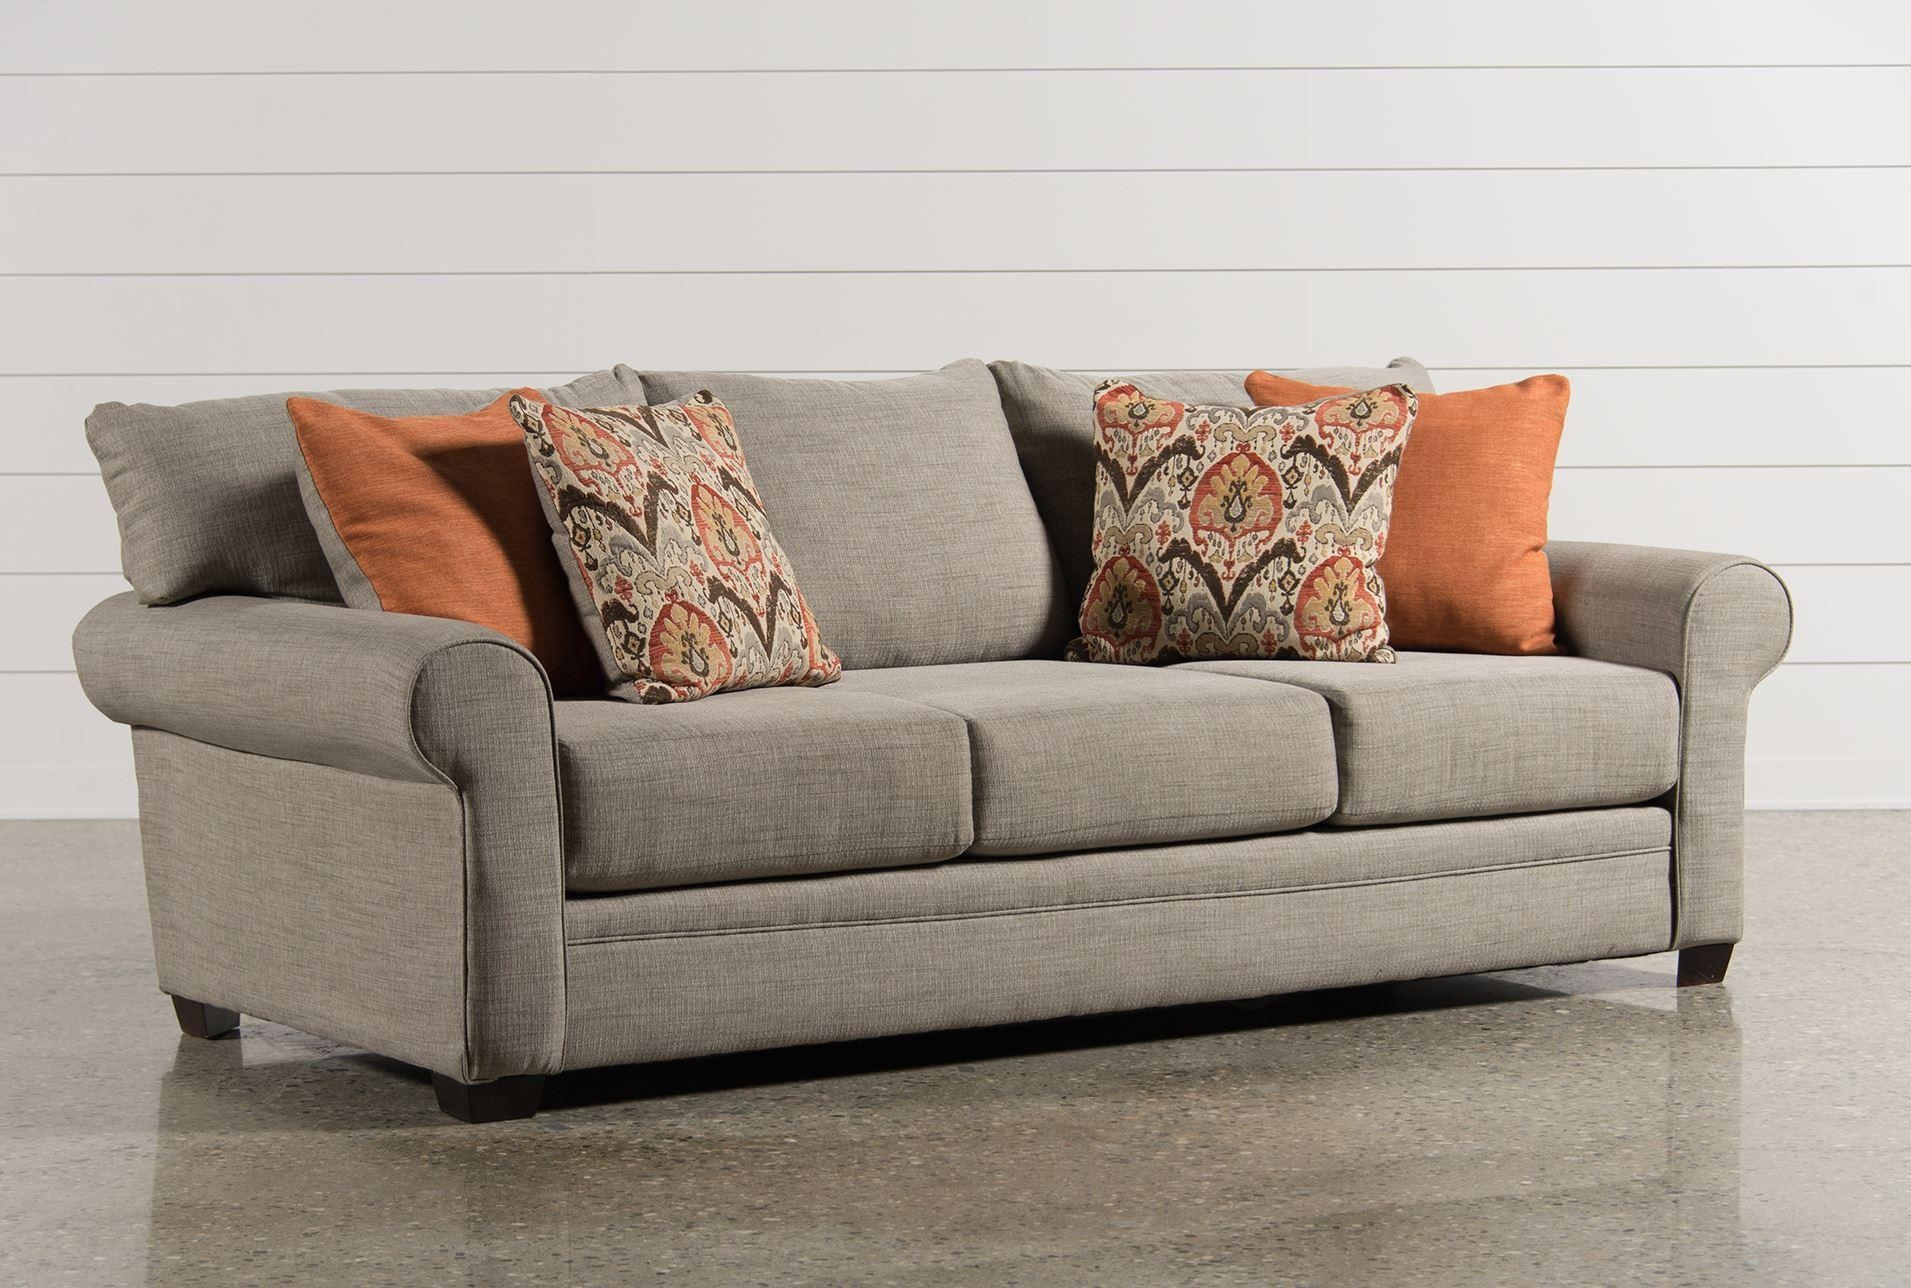 Sofa S 20 Ideas Of Pier One Sleeper Sofas | Sofa Ideas